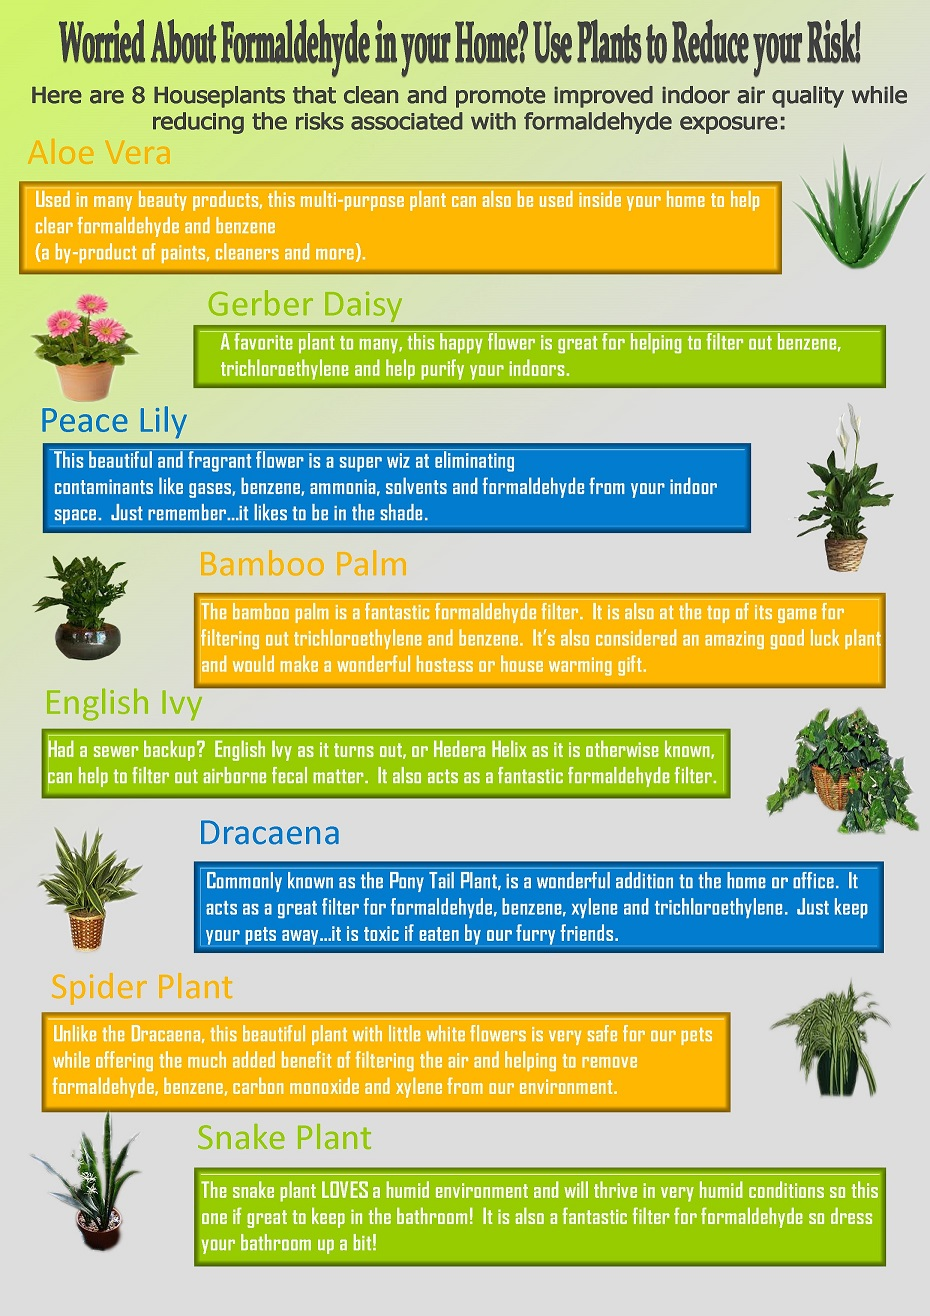 Formaldehyde In Your Home Use Plants To Reduce Risk Share This